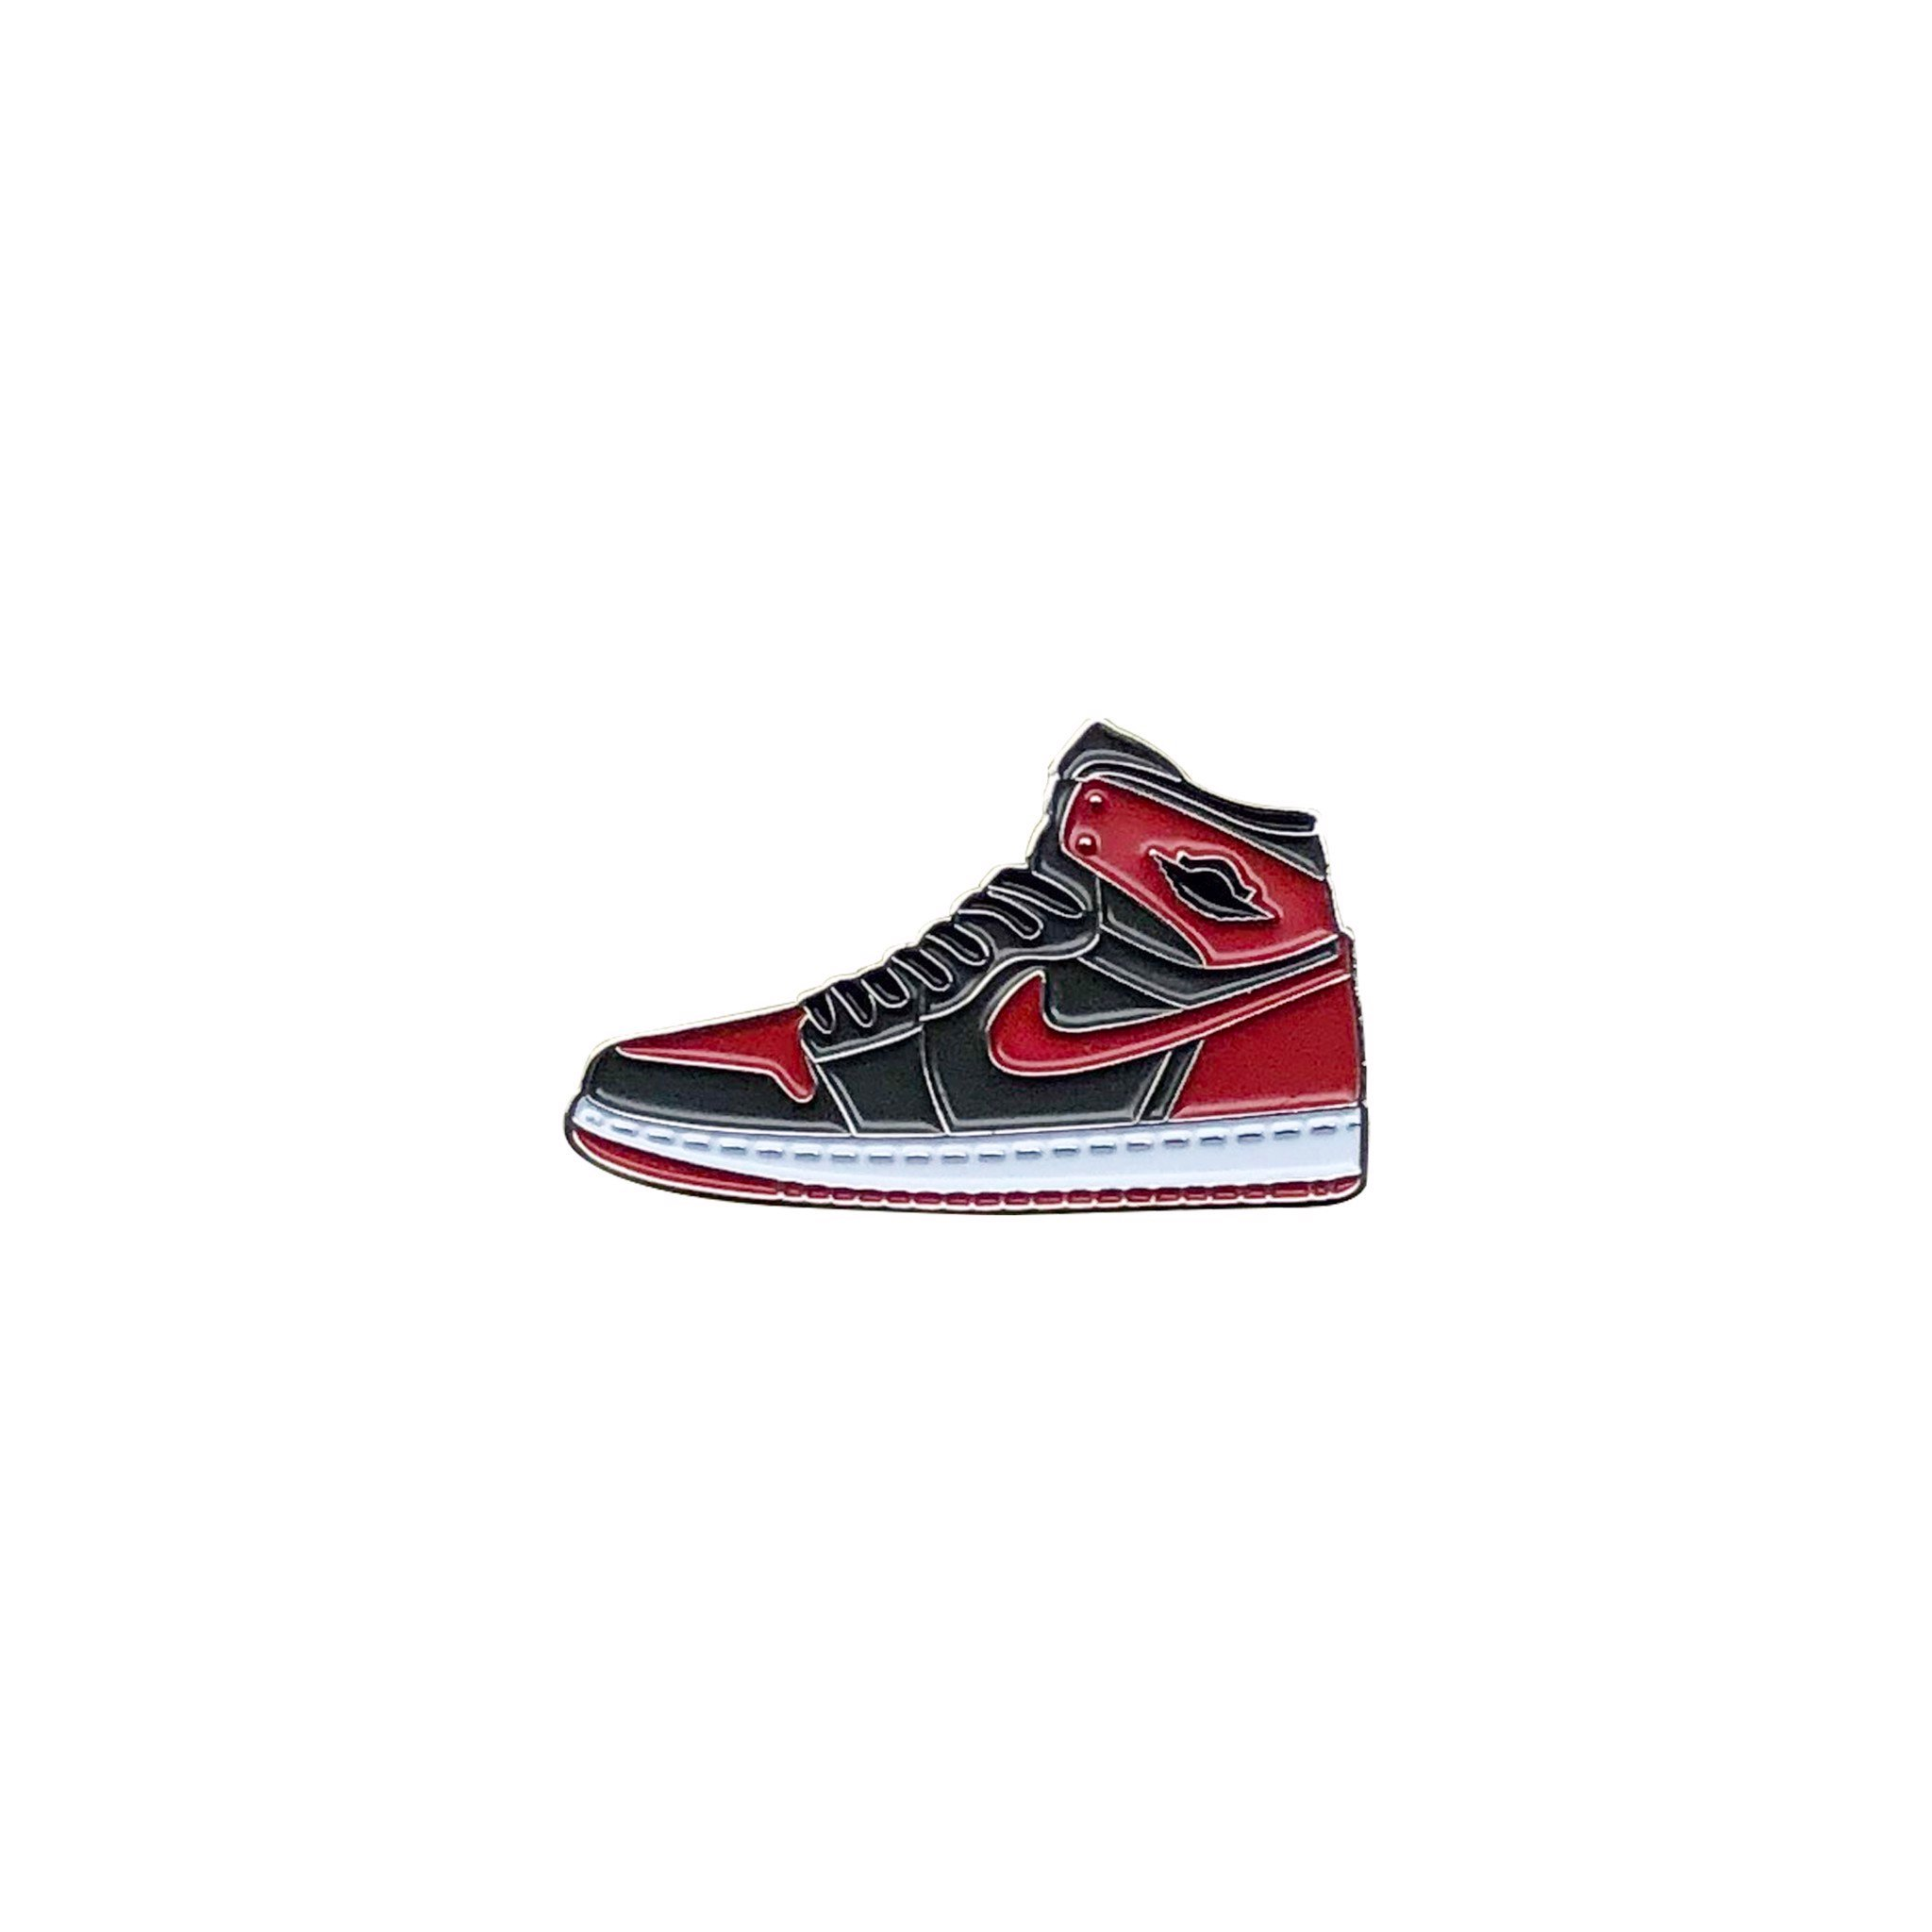 Rocky Inc Pin, AJ1 High Bred